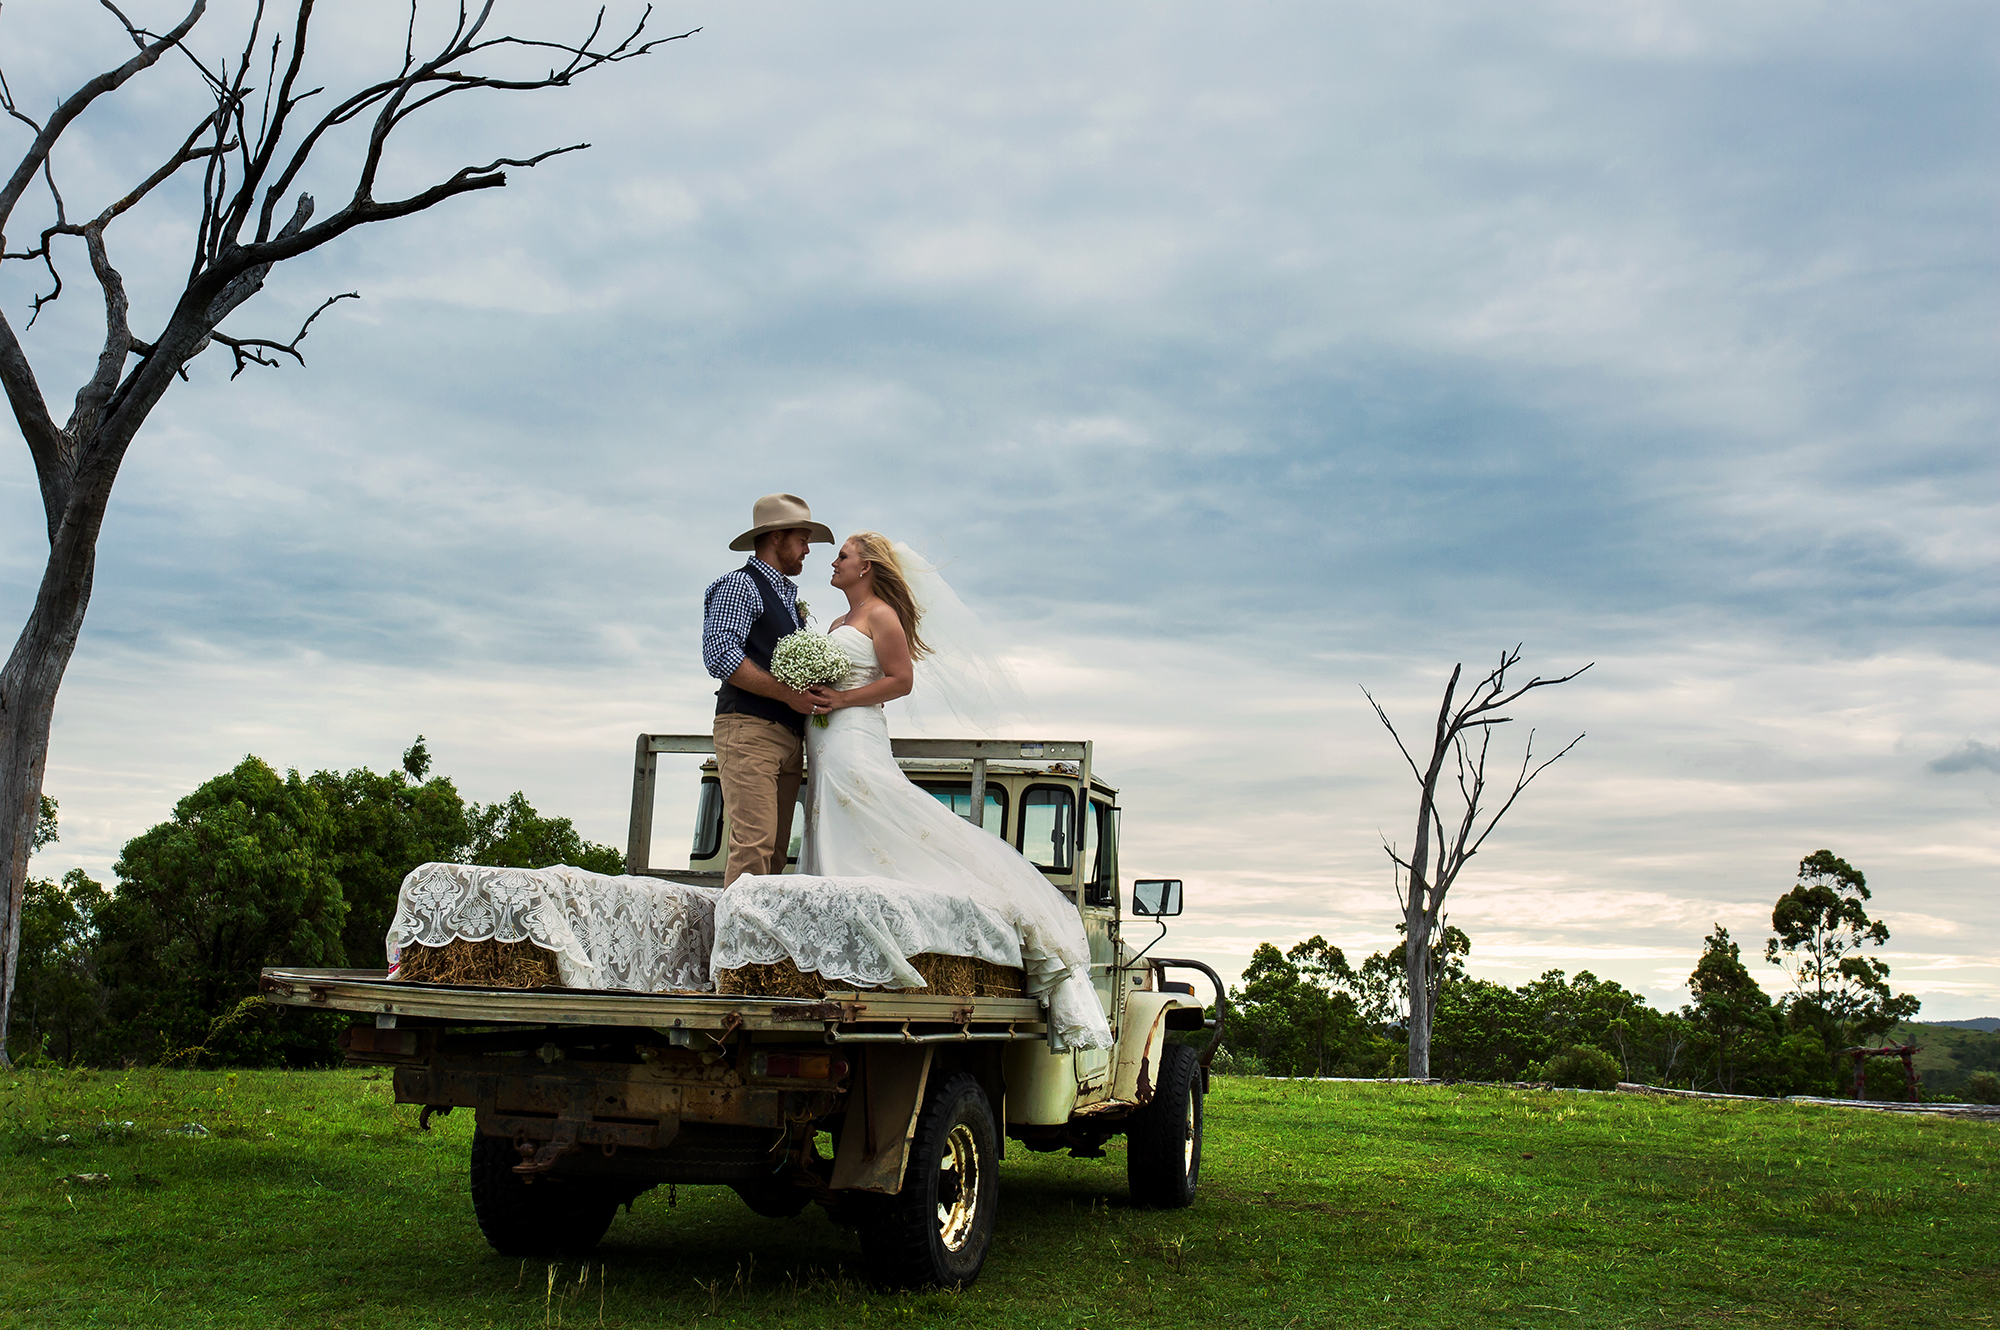 Liz and Jake on Truck